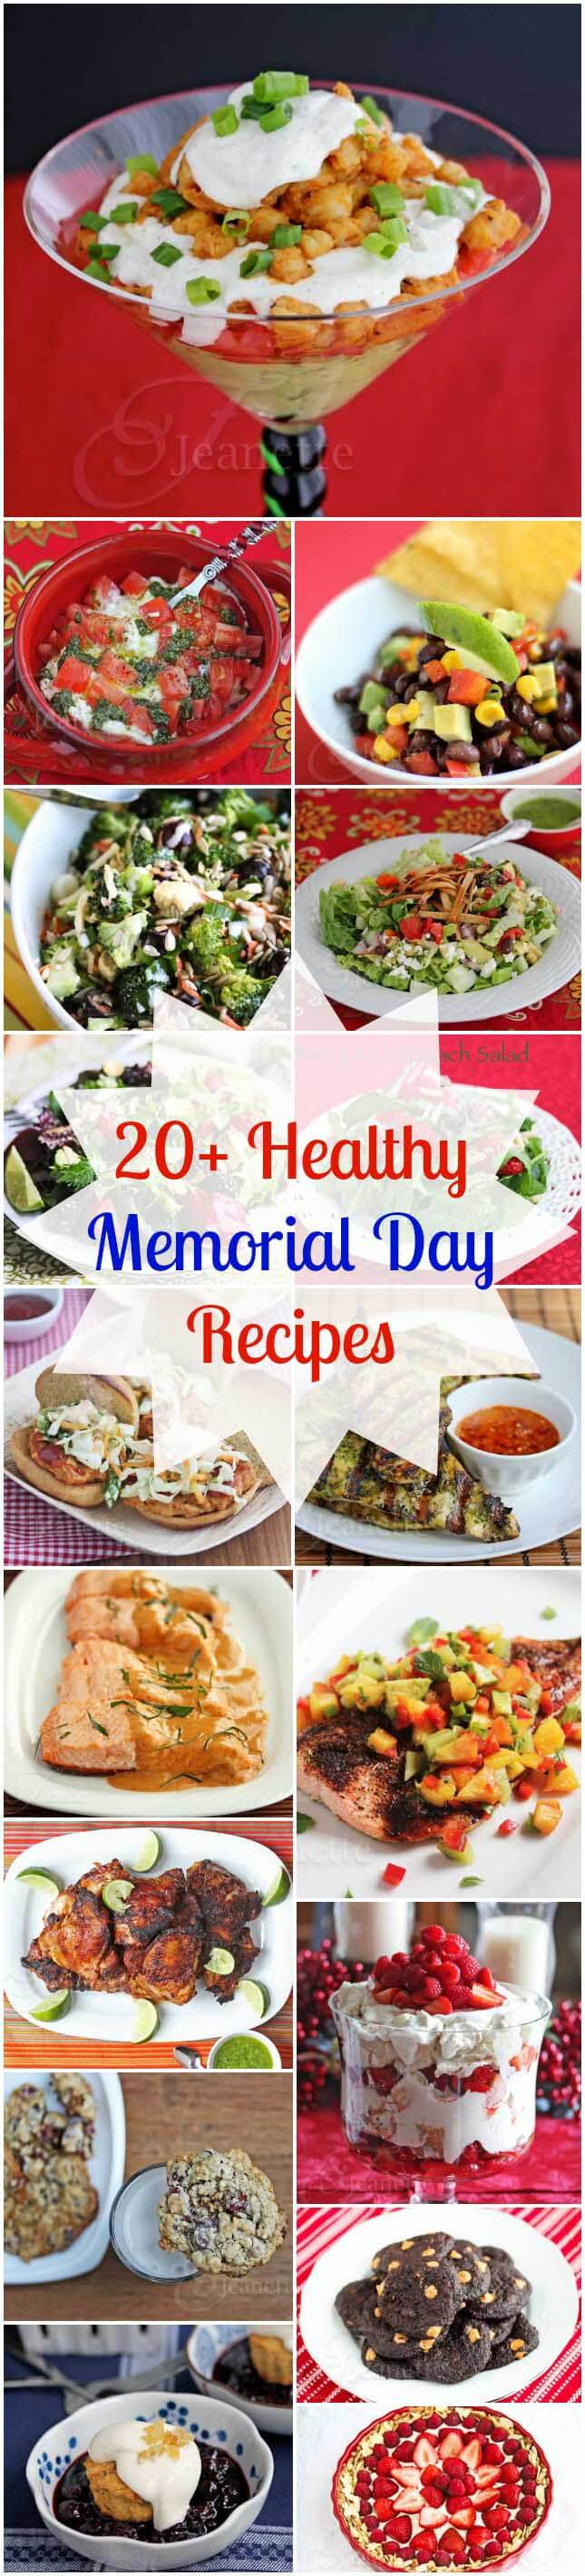 20+ Healthy Memorial Day Recipes